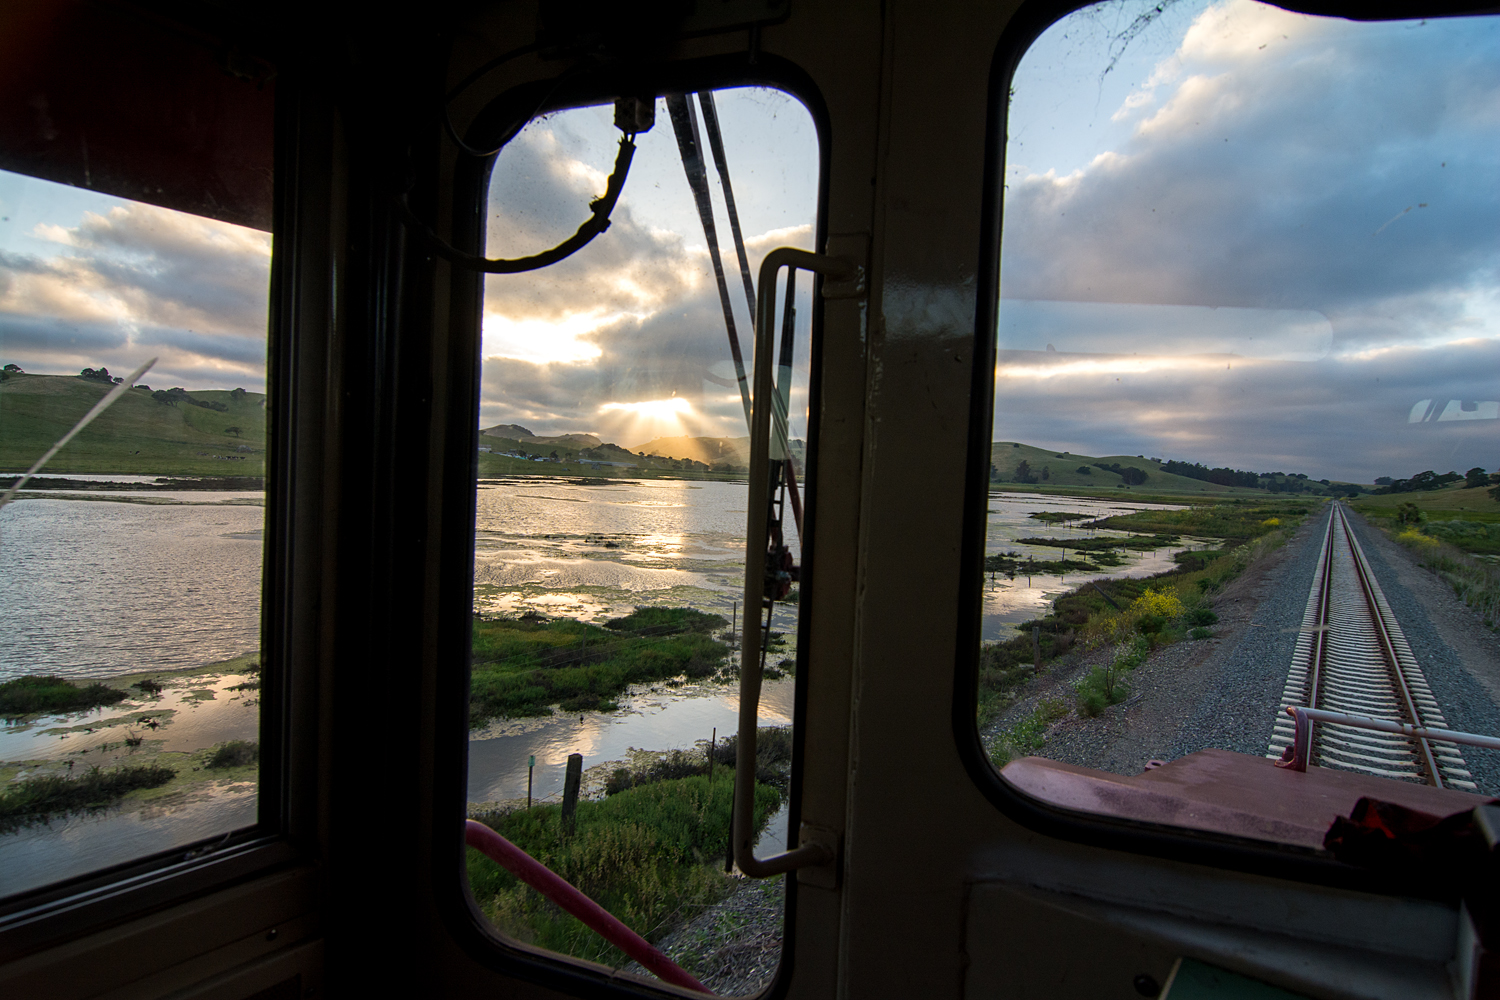 A scenic view from the cab of the locomotive traversing the marshlands between Novato and Petaluma. ©2018 Jamie Miller